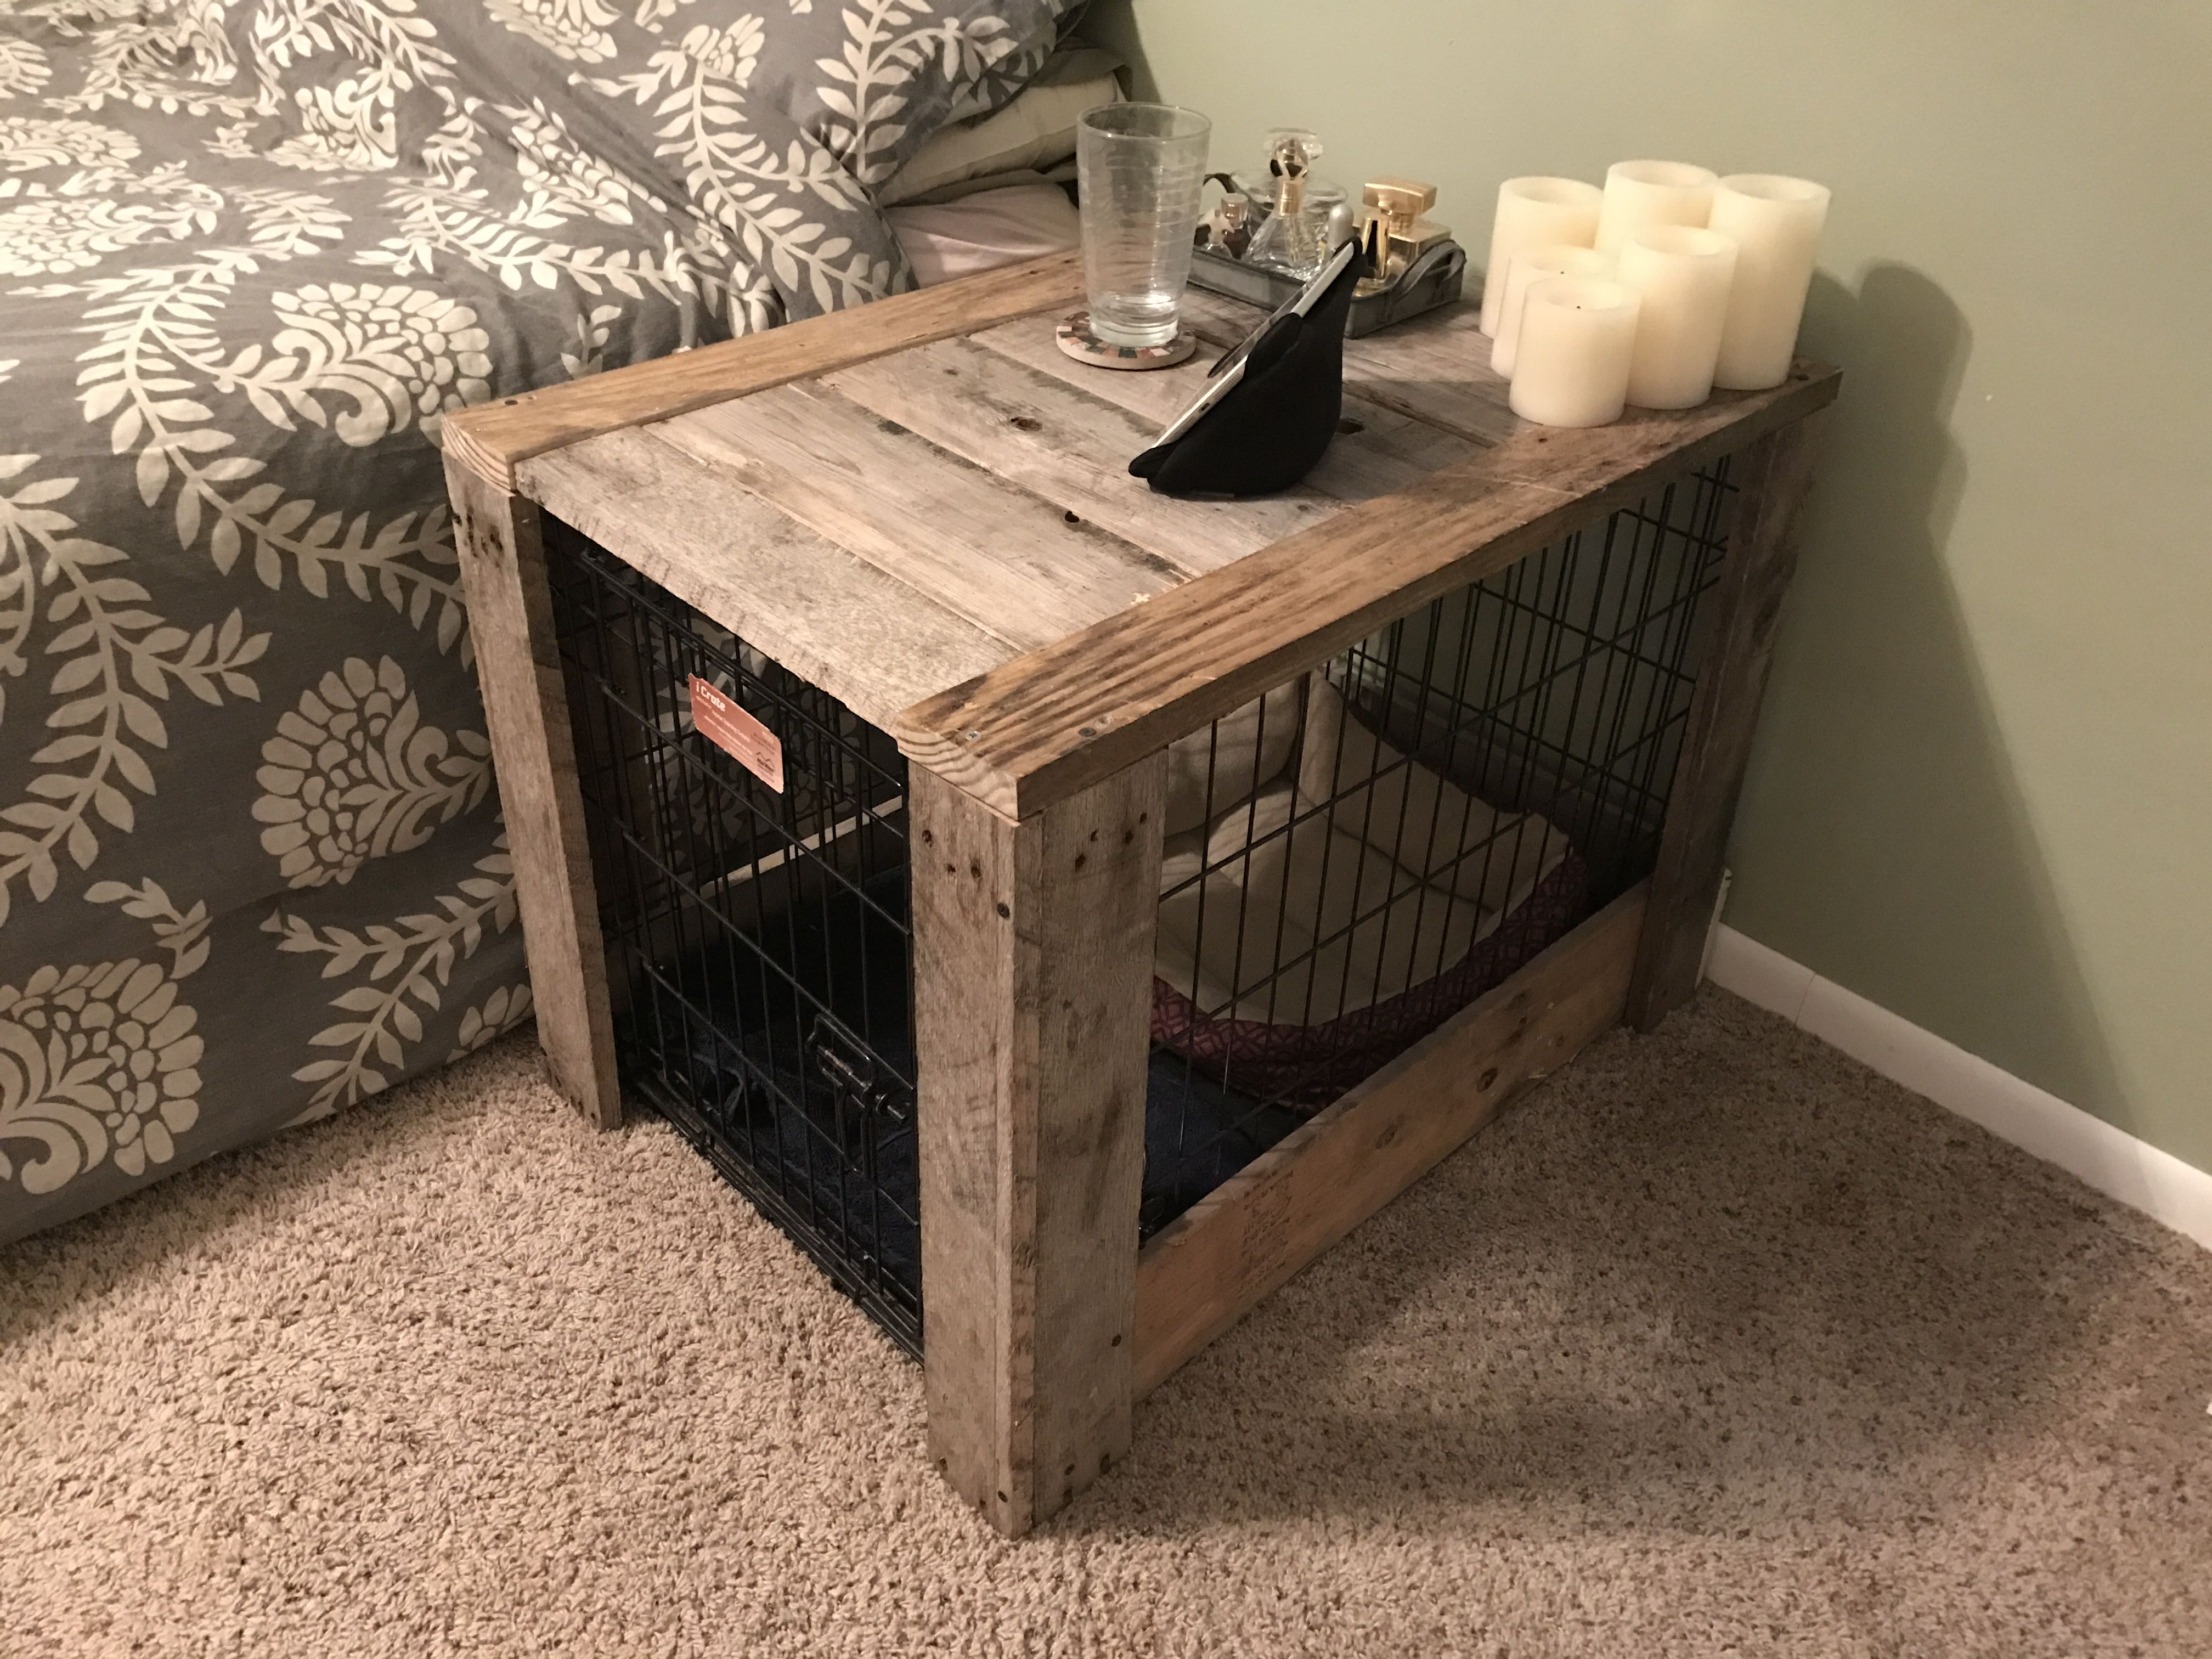 Direwolf\u0027 Dog Crate Table Top Check out the full project http ...